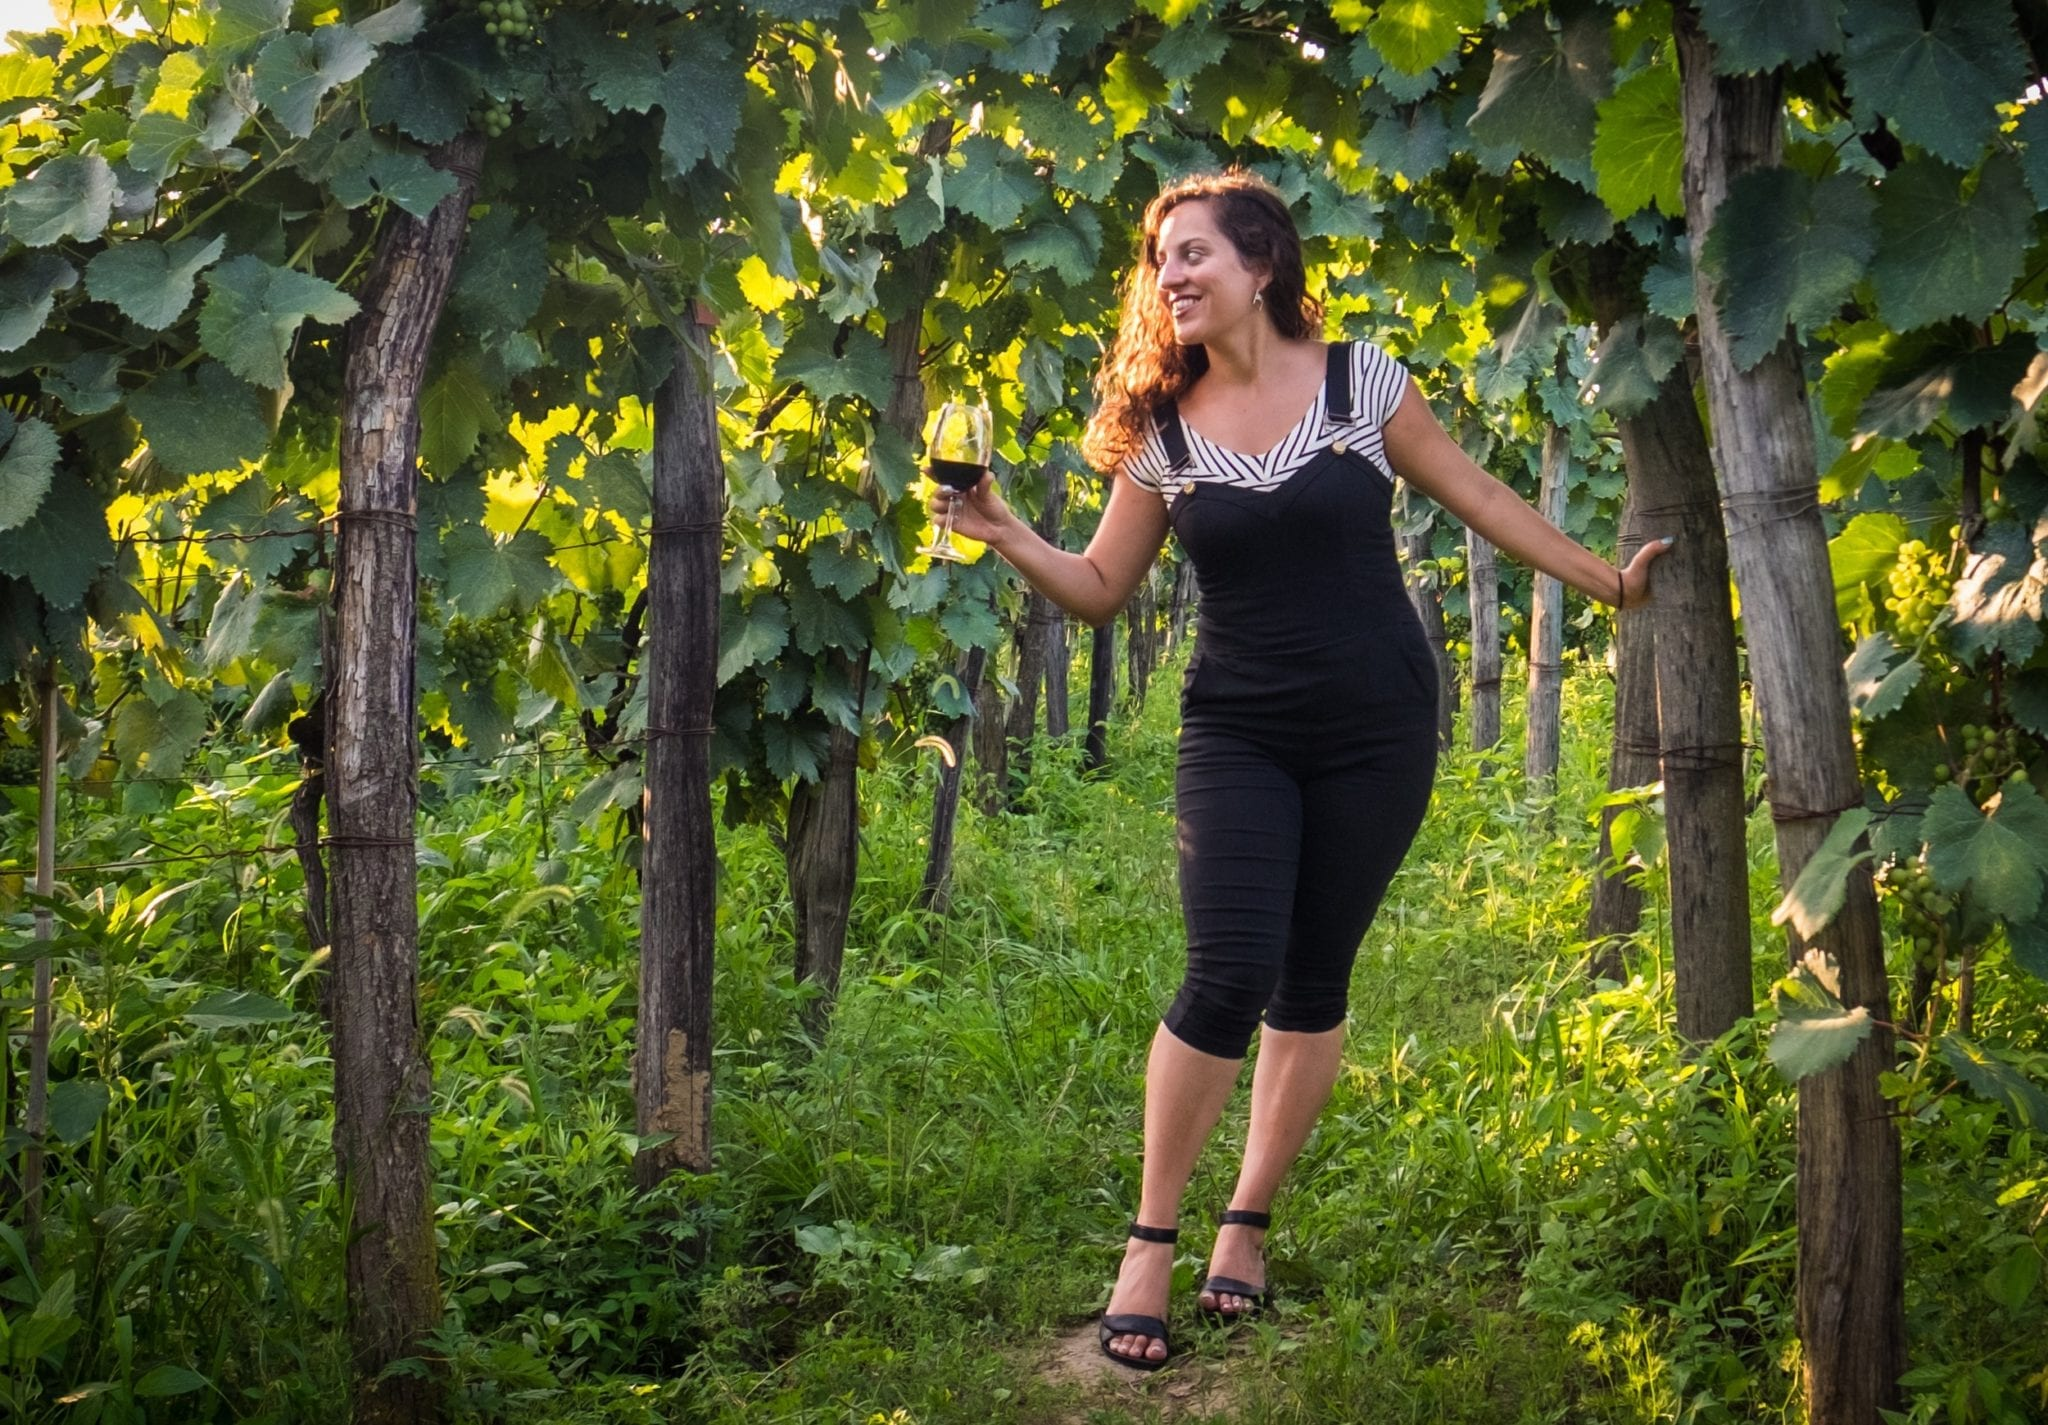 Kate stands in between lines of a vineyard, wearing cropped black overalls and hanging onto a wooden post and smiling as she holds a glass of wine in the other hand.